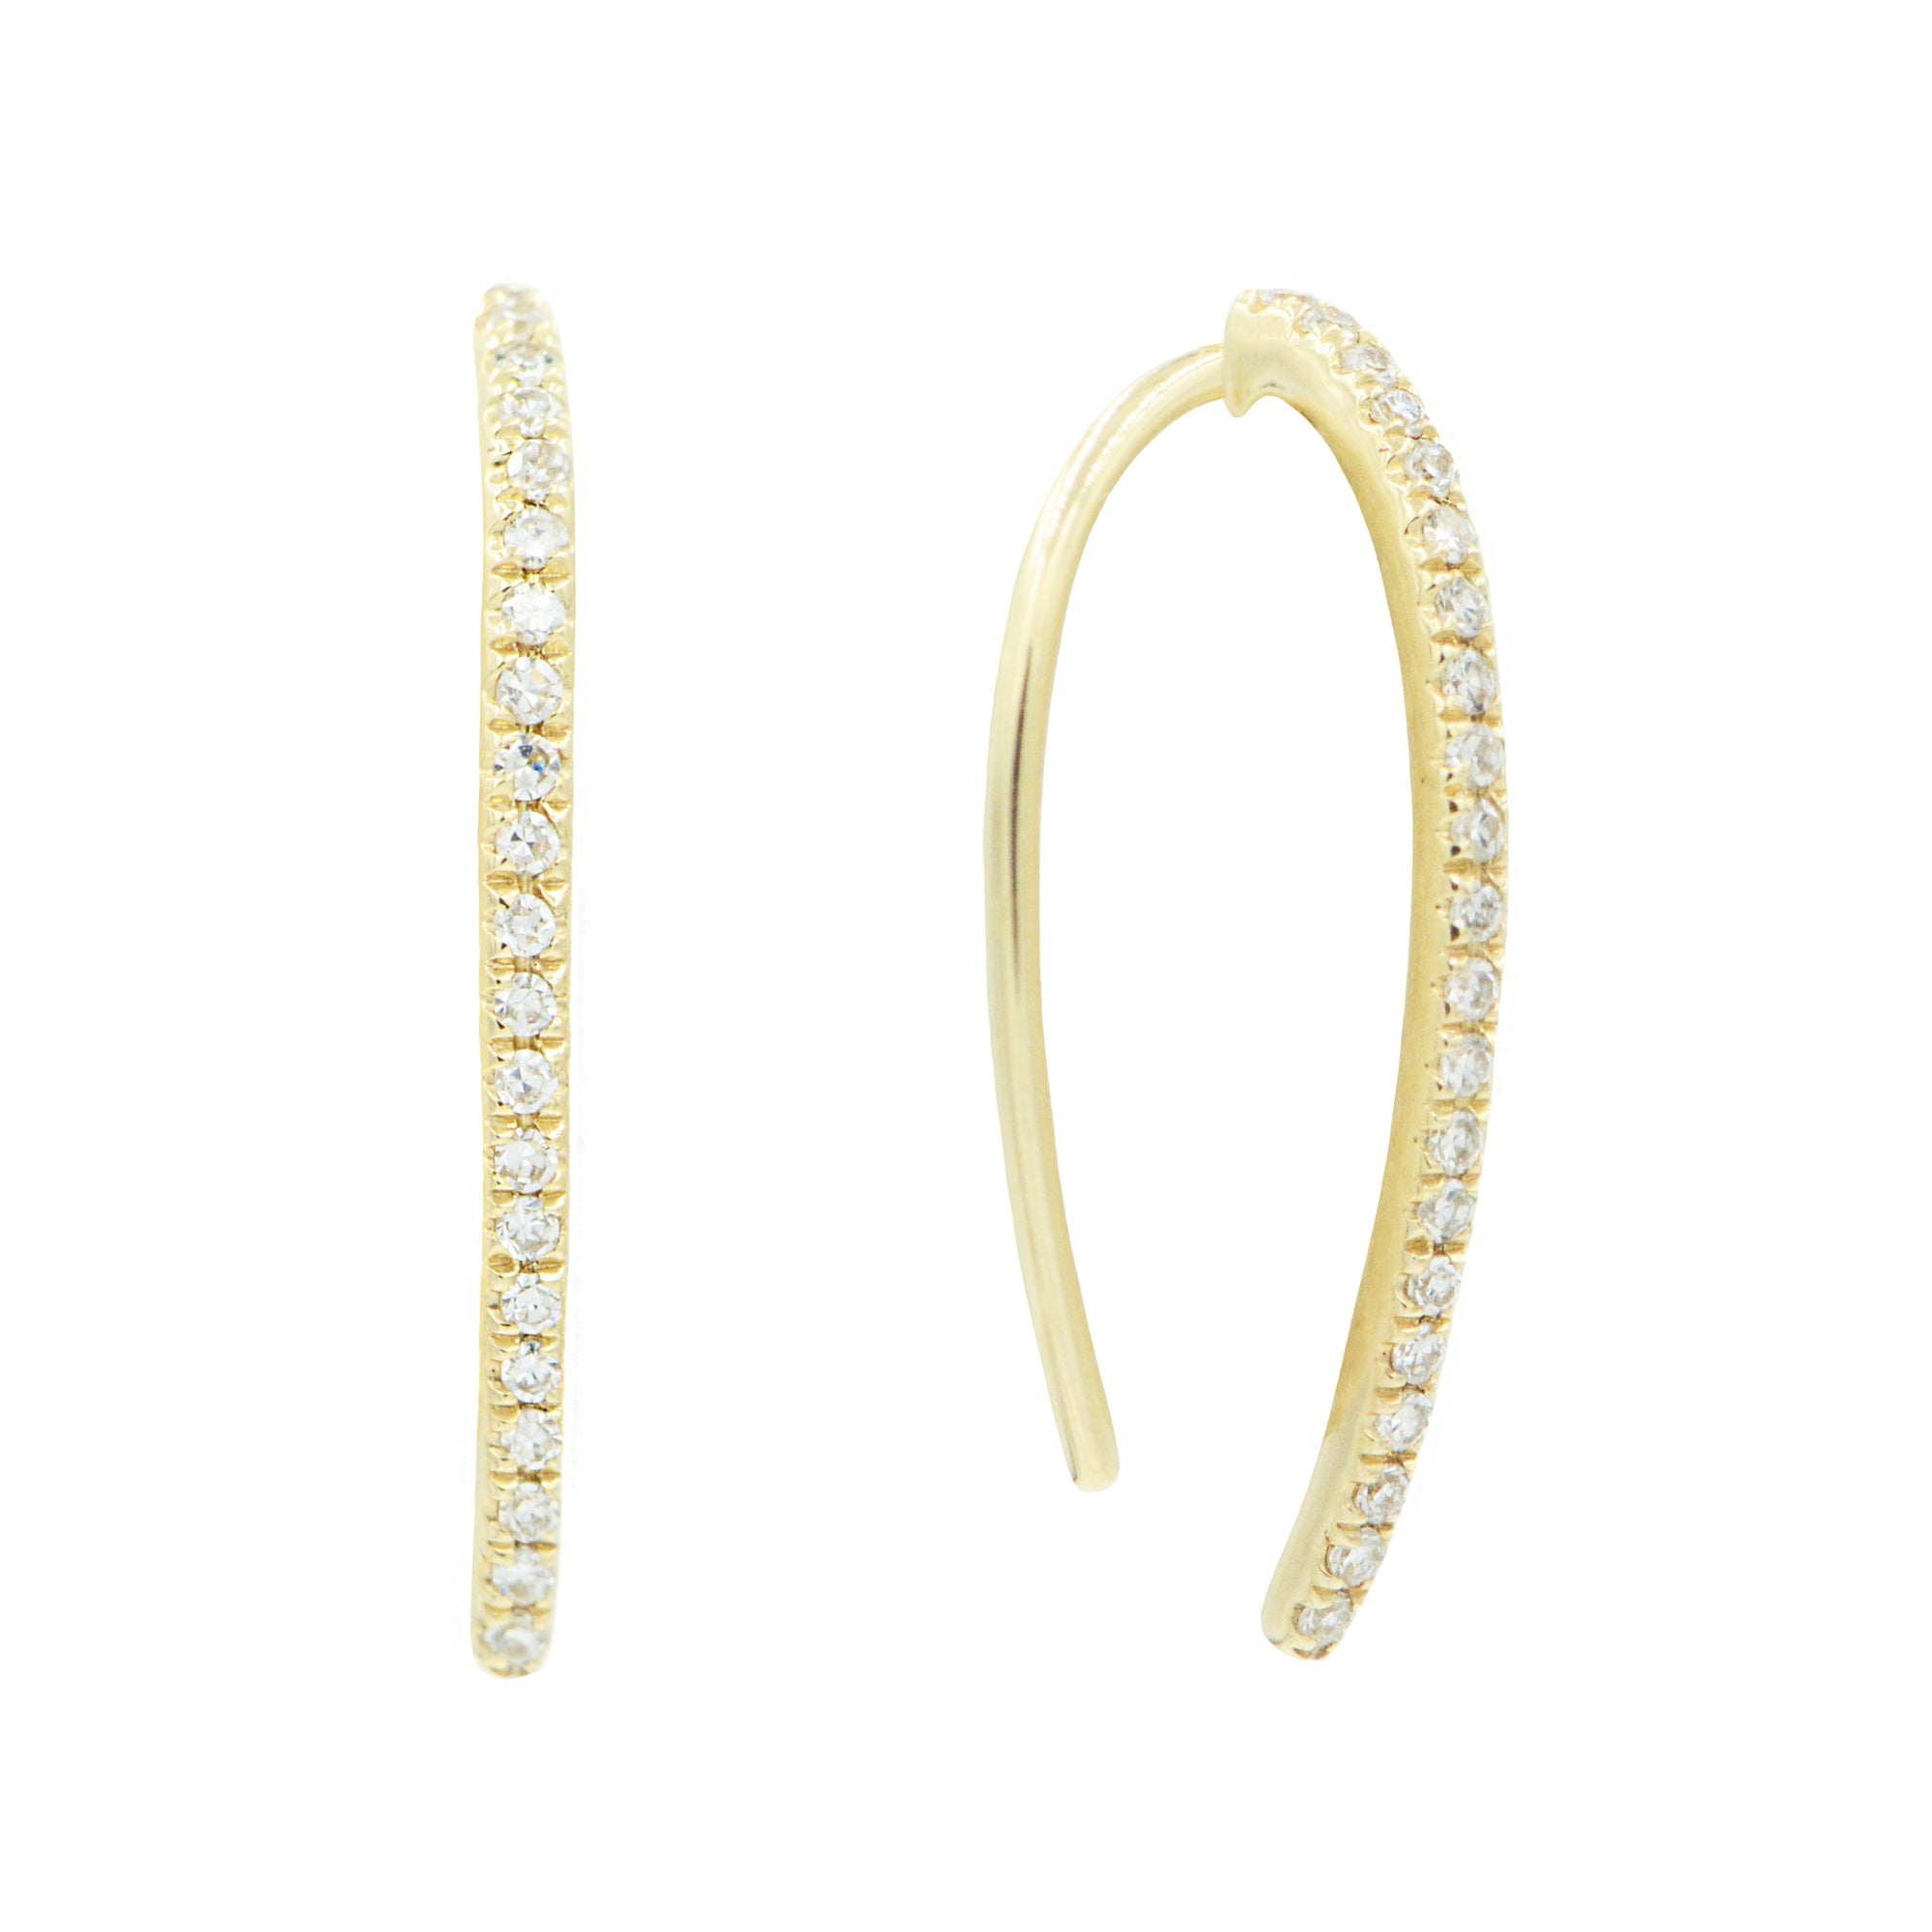 Diamond Open Loop Earrings in 14k Yellow Gold